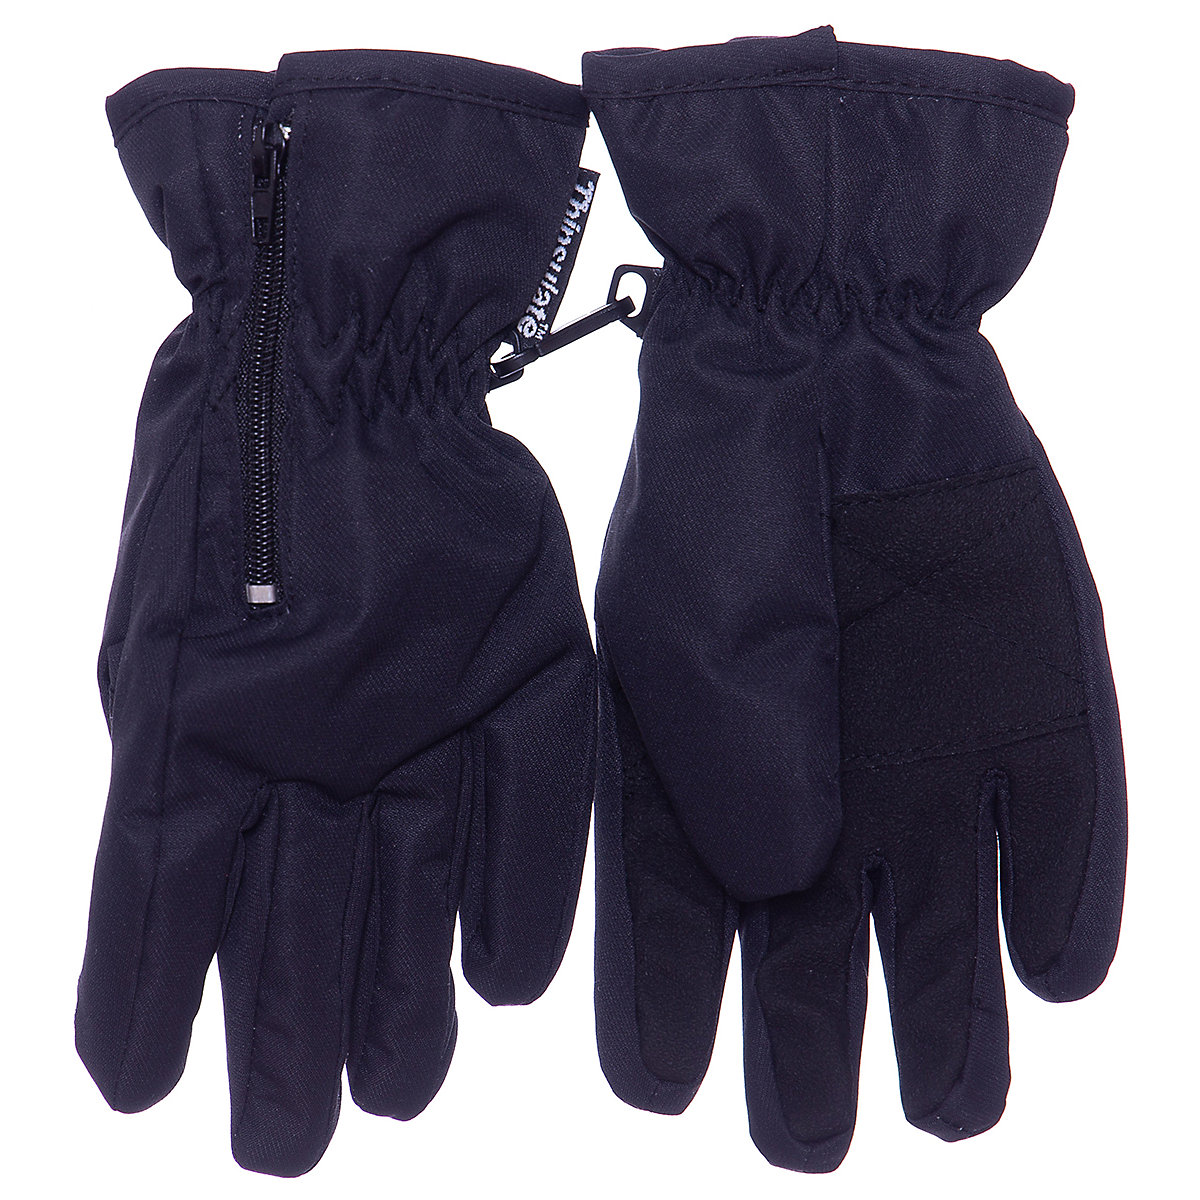 Ticket to Heaven Gloves & Mittens 8882630 glove mitten winter clothes for children girls boys girl boy elbow long industry anti acid alkali chemical resistant rubber work gloves safety glove